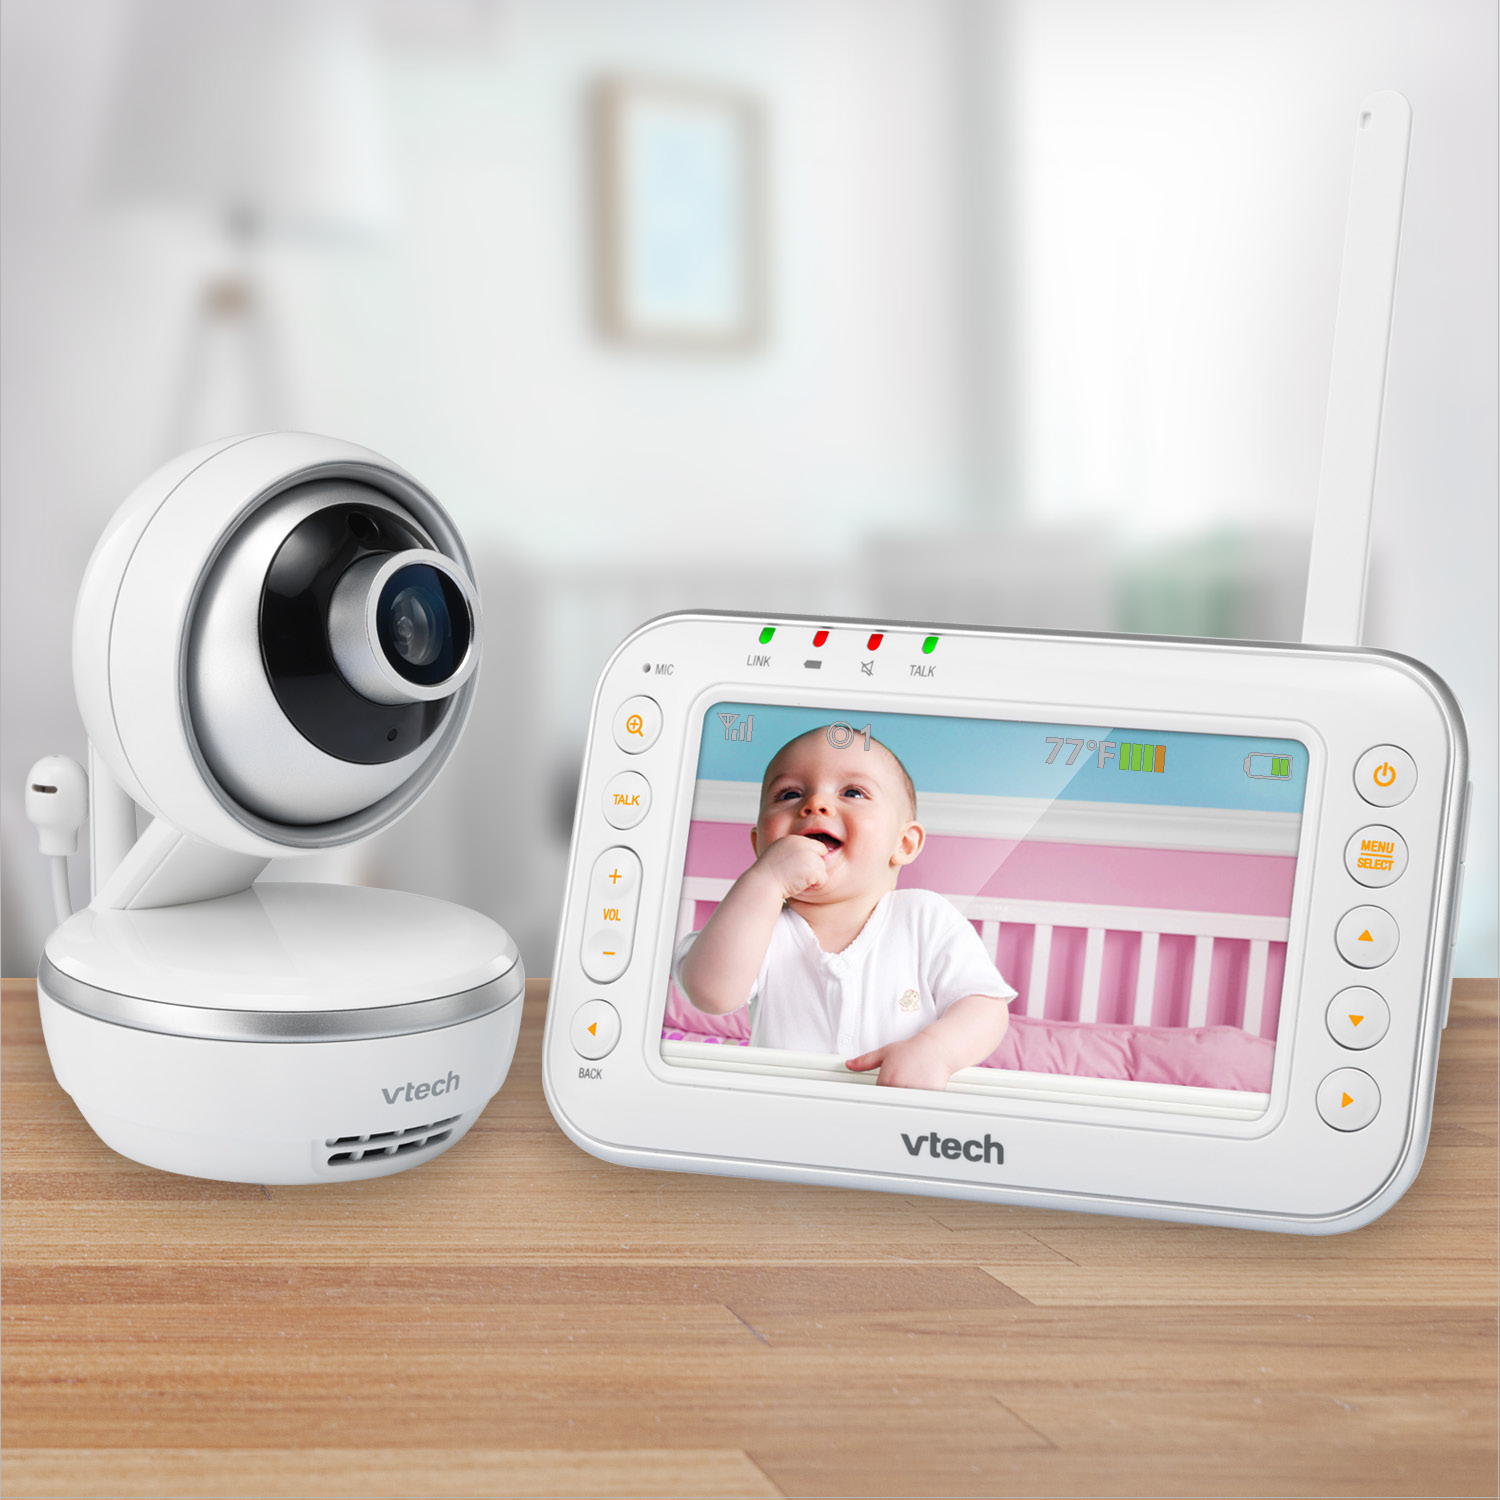 """VTech VM4261, 4.3"""" Digital Video Baby Monitor with Pan & Tilt Camera, Wide-Angle Lens and Standard Lens,... by VTech"""